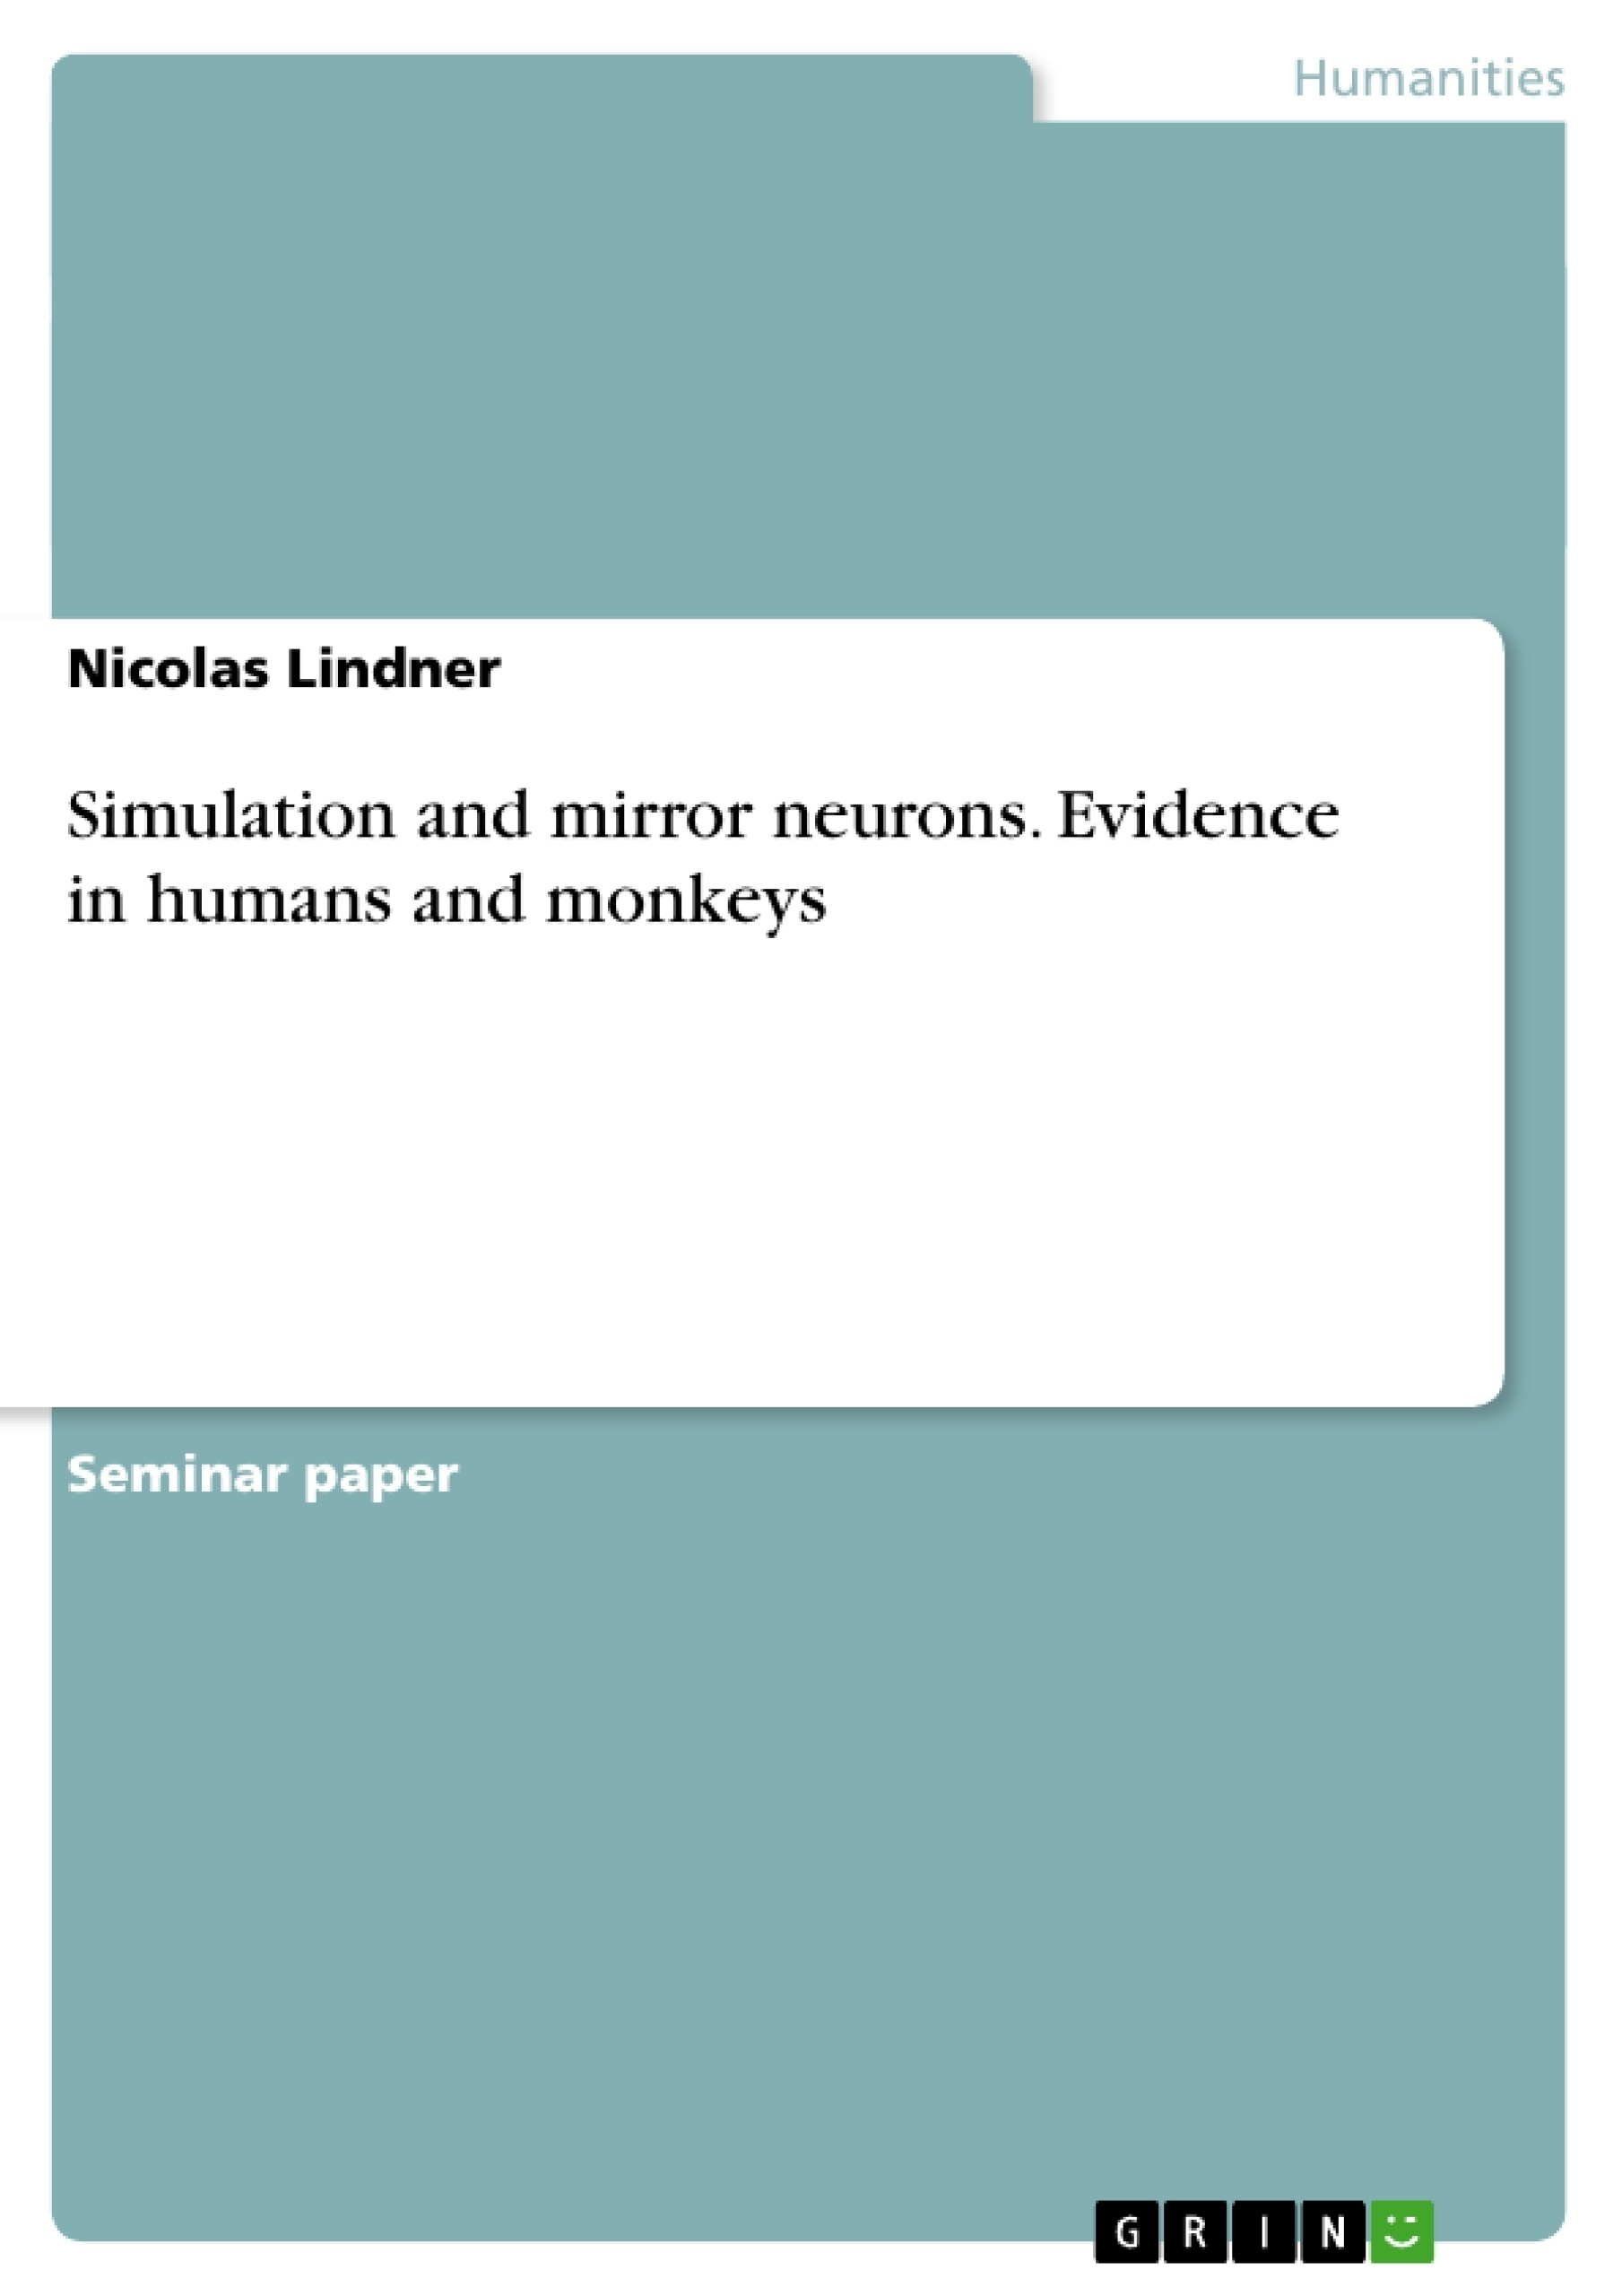 Title: Simulation and mirror neurons. Evidence in humans and monkeys